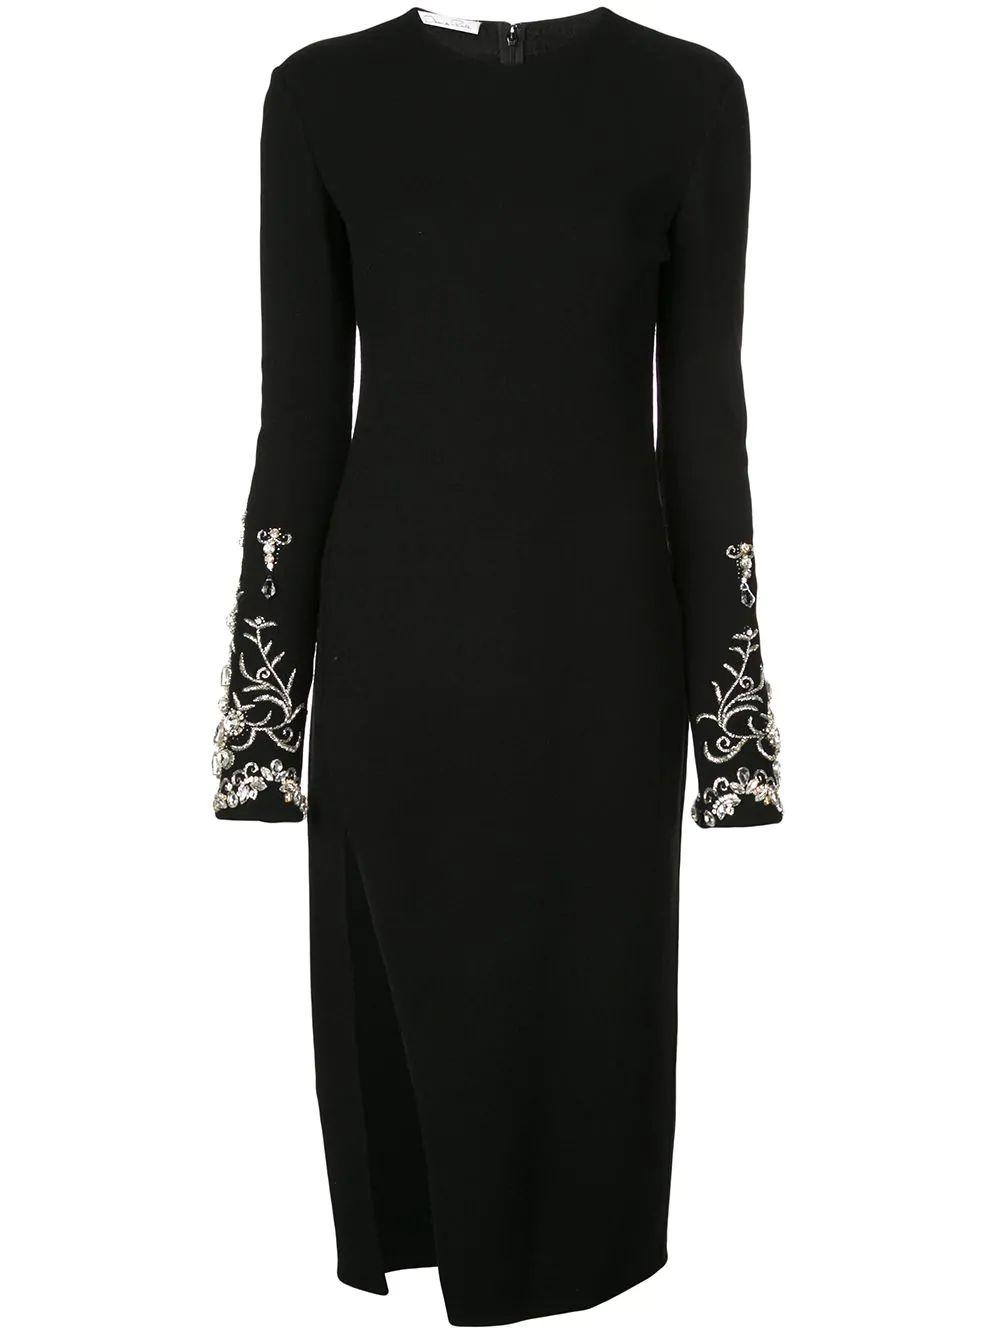 Long Sleeve Embroidery Cuff Dress With Side Slit Item # 19FE2362STW